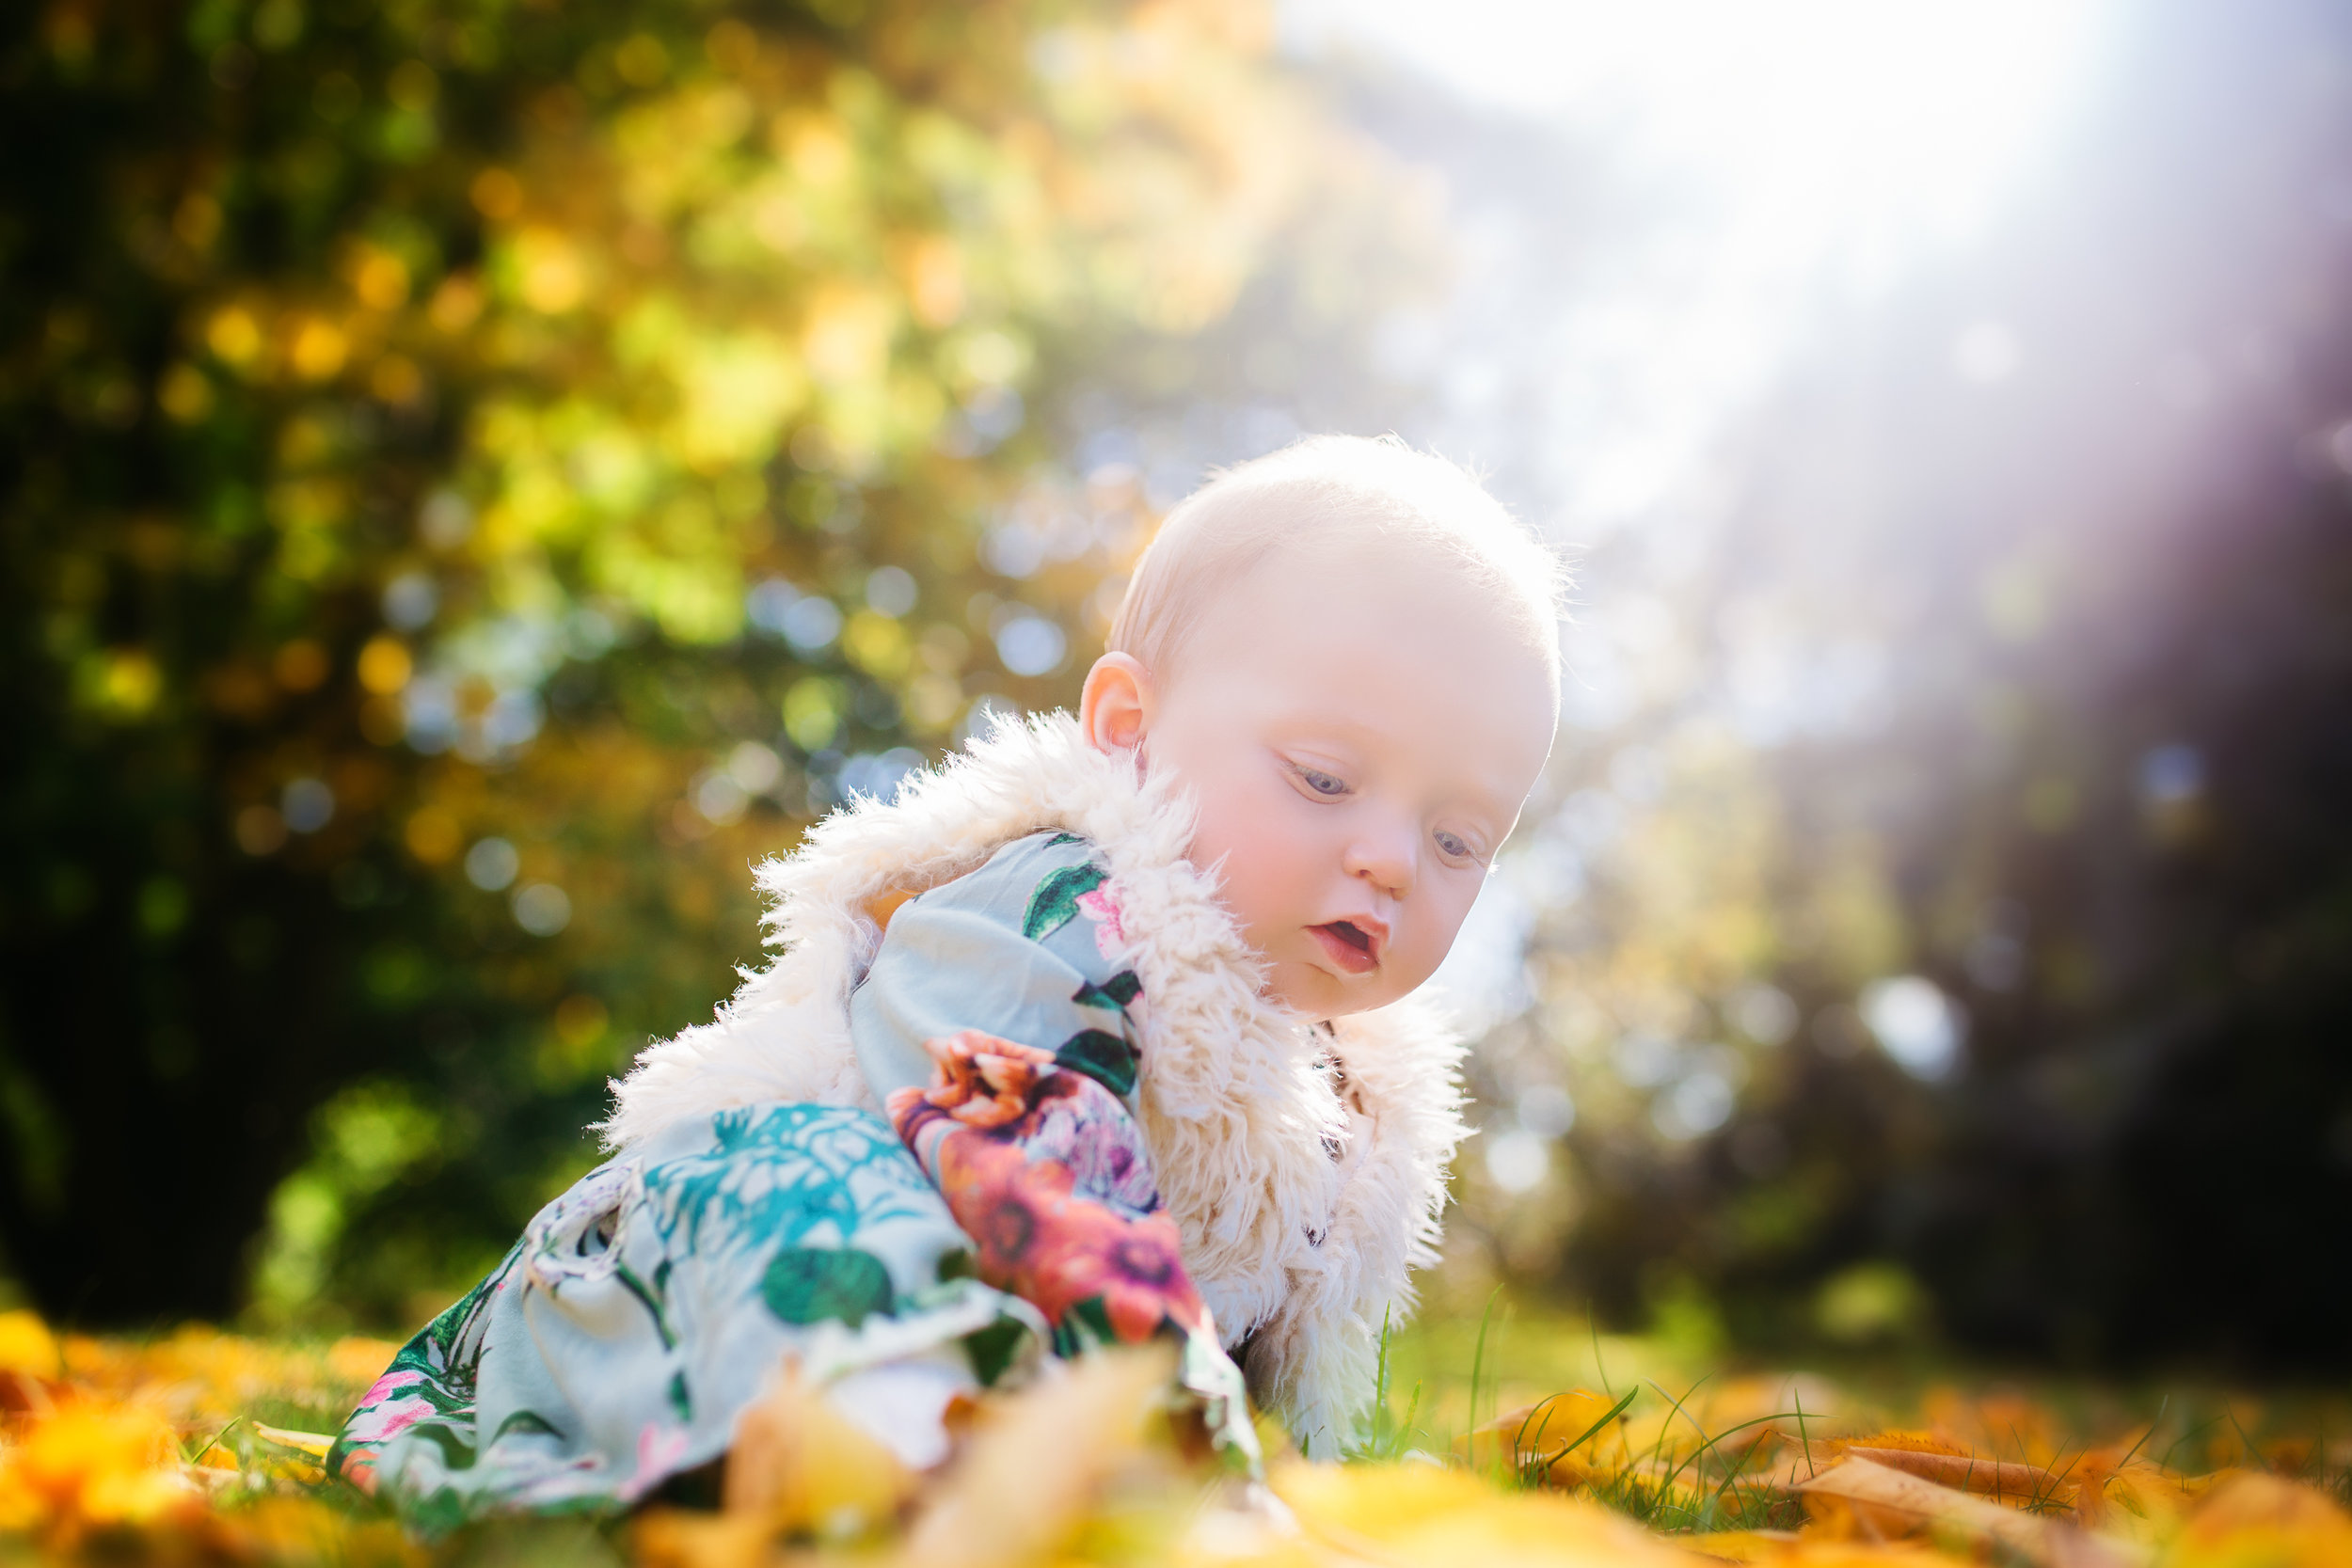 Baby Girl on Outdoor Child Photography Session, by Susie Fisher